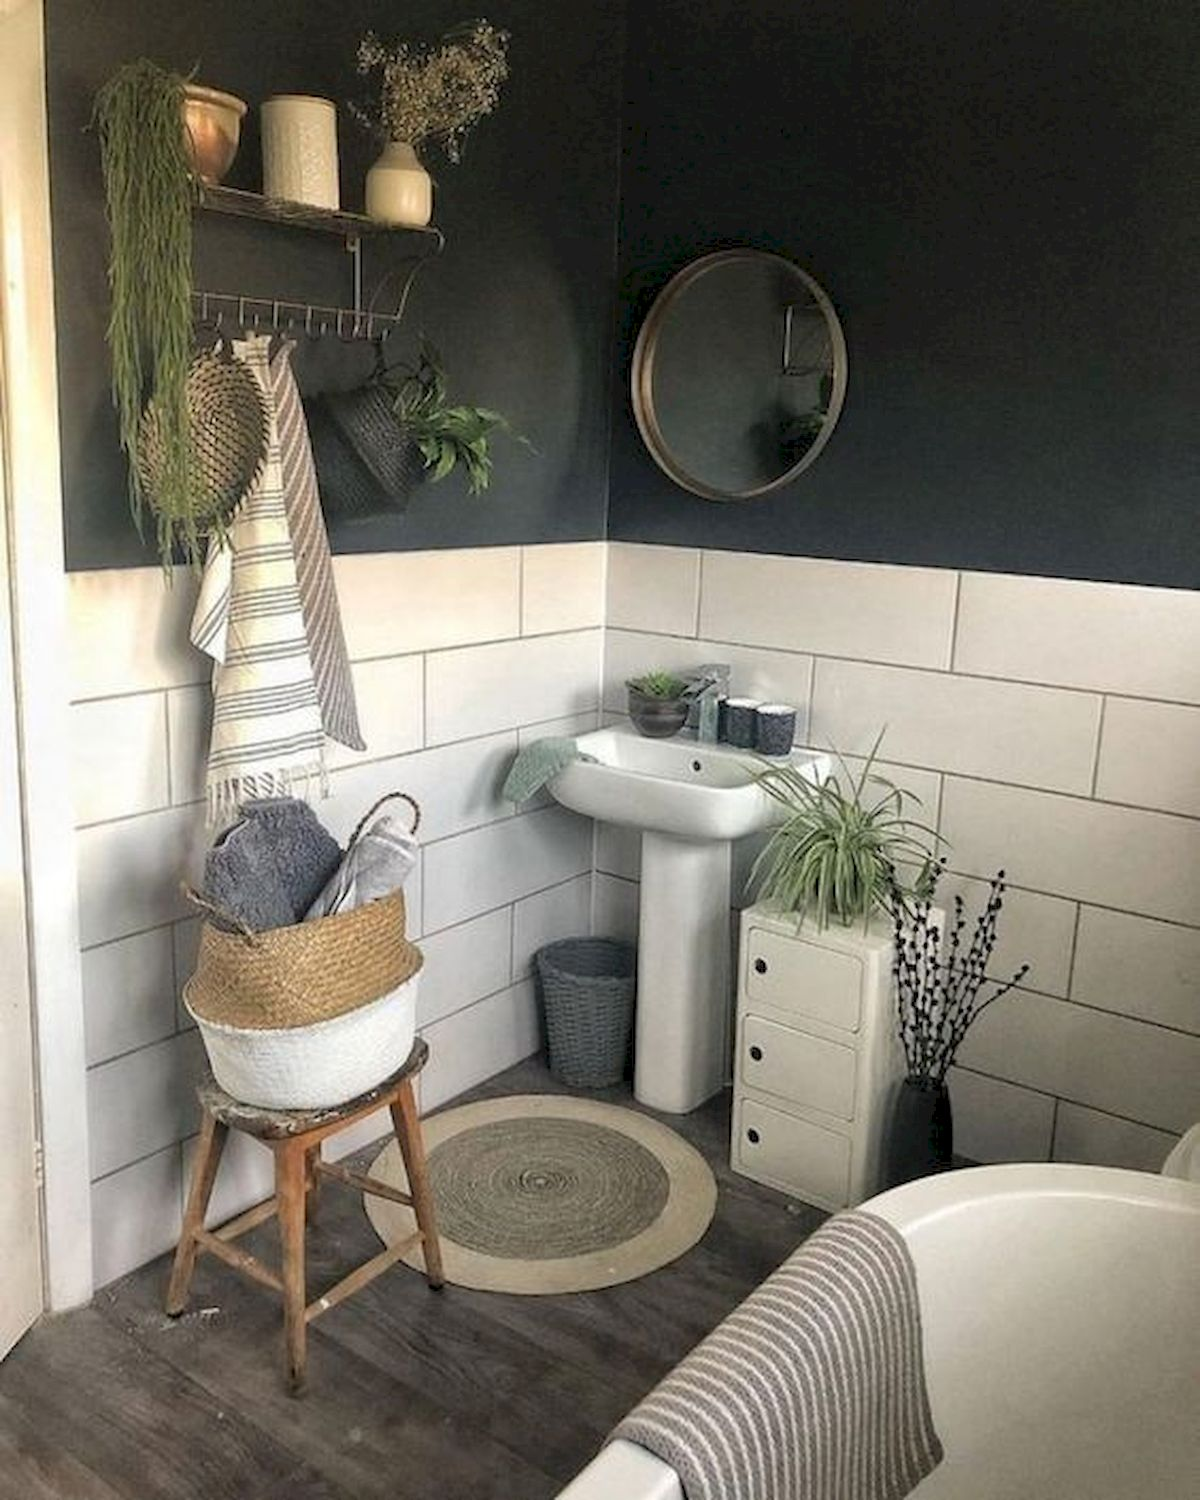 50 Cozy Bathroom Design Ideas For Small Space In Your Home (3)